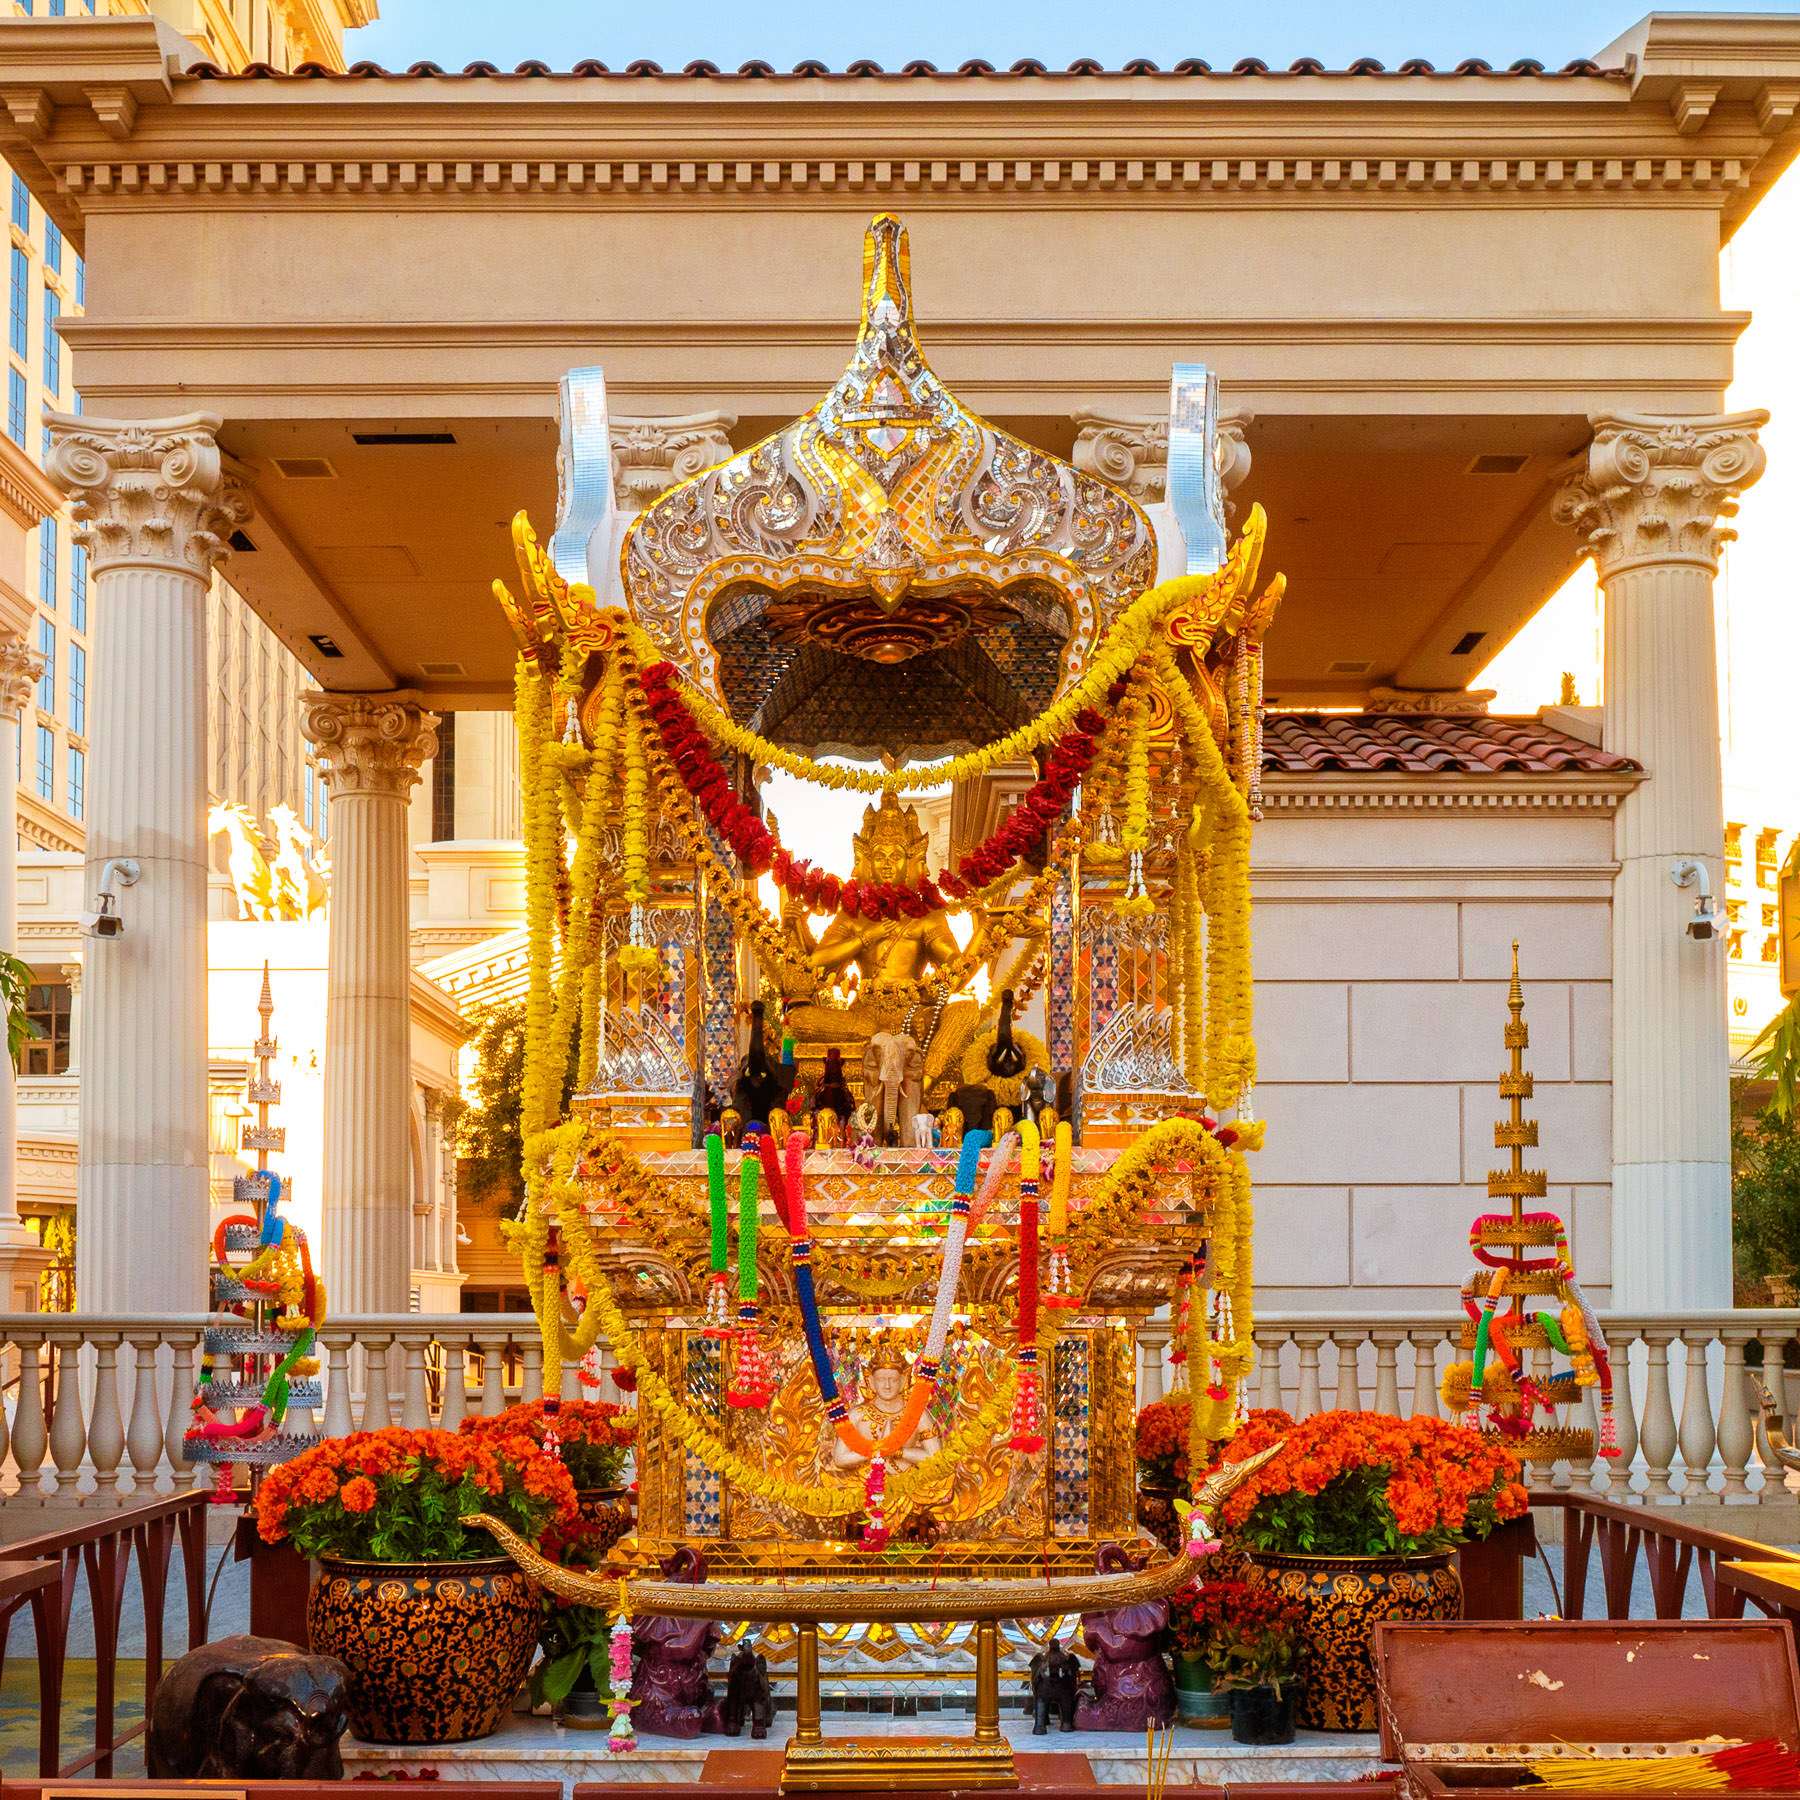 The Erawan Shrine (or Shrine of the Four-Faced Brahma) at Caesars Palace, Las Vegas, was built in 1984 and is a replica of the original in Bangkok, Thailand. It was donated by newspaper tycoons Mr. and Mrs. Kamphol Vacharaphol and Mr. Yip Hon, a prominent figure in Hong Kong and is considered a Hindu holy site. Visitors express gratitude for wishes granted by offering flowers, incense, money (which Caesars donates to charities in Thailand) or by placing small wooden elephants